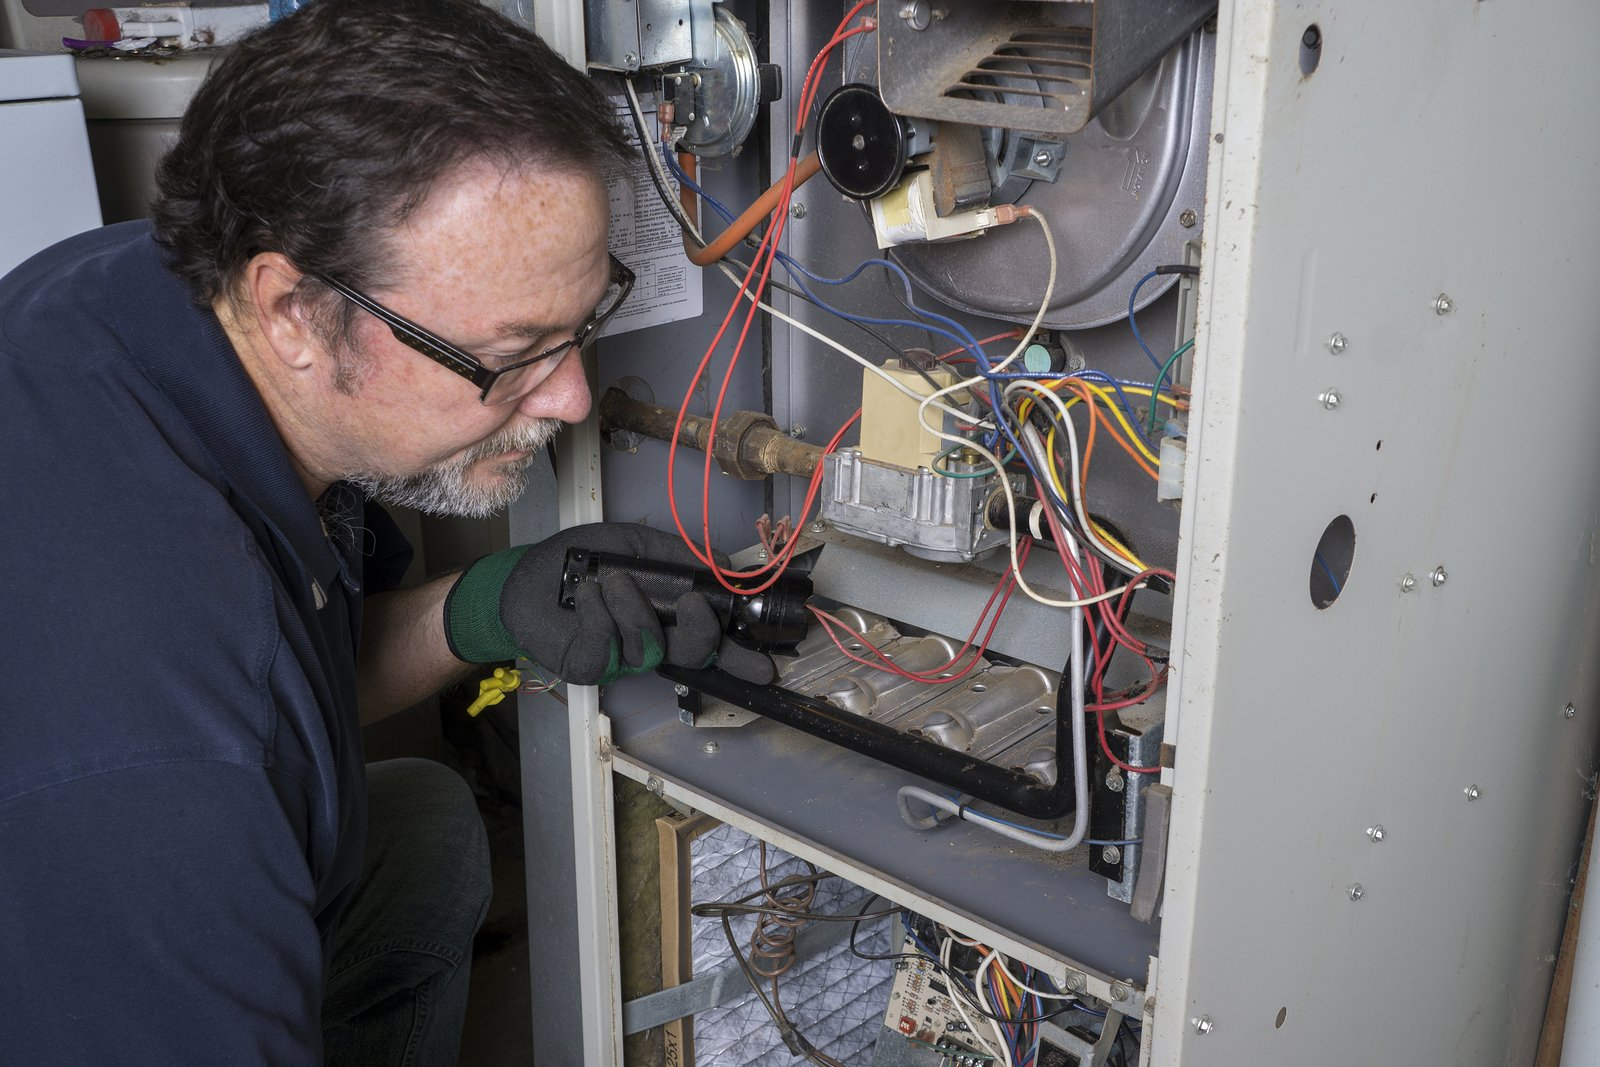 Furnace Maintenance and Heating Maintenance in Bettendorf, Iowa